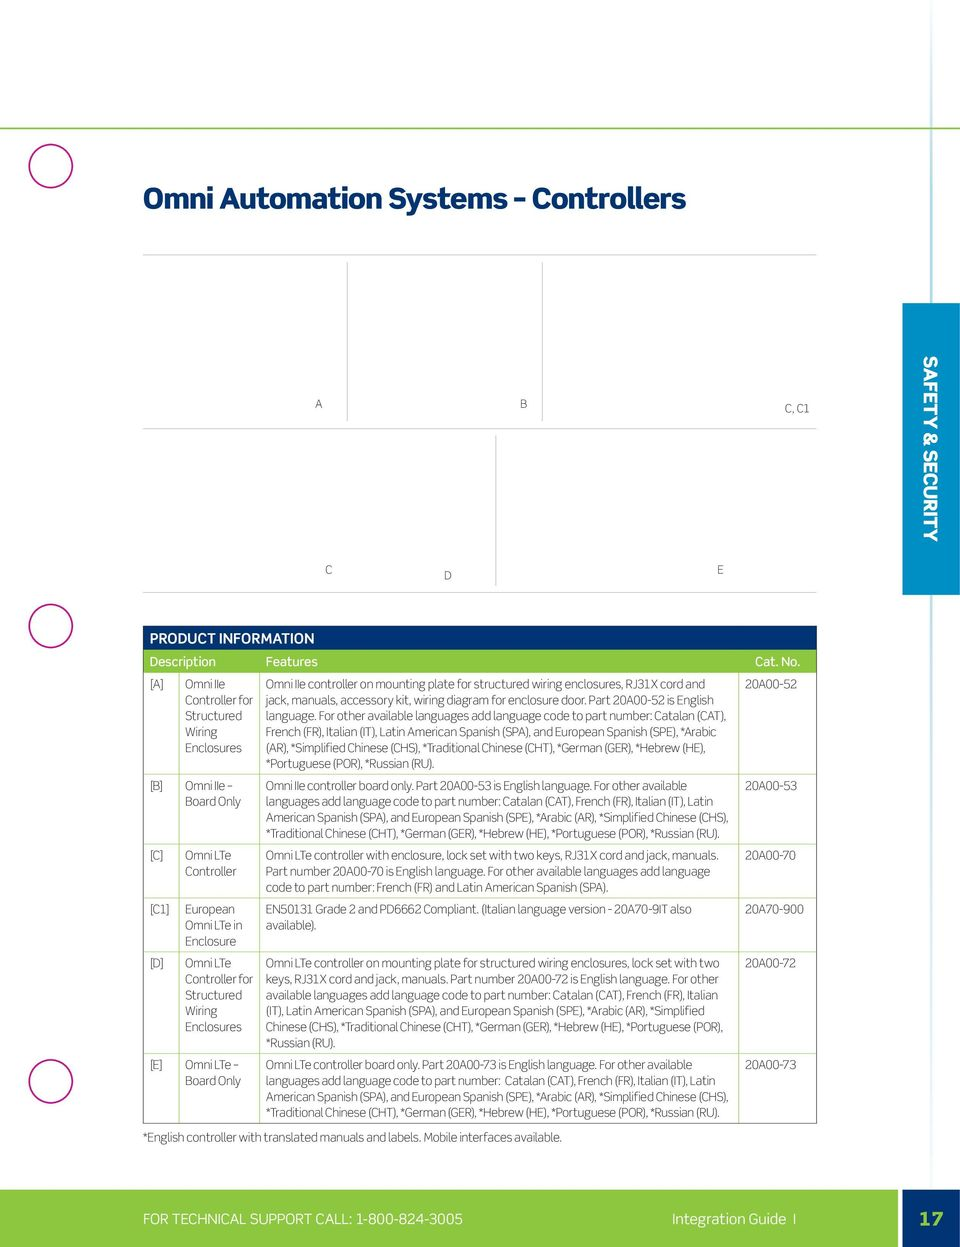 Guide To Integration Security Automation Energy Management Structured Wiring Enclosure Accessories E Omni Lte Board Only Iie Controller On Mounting Plate For